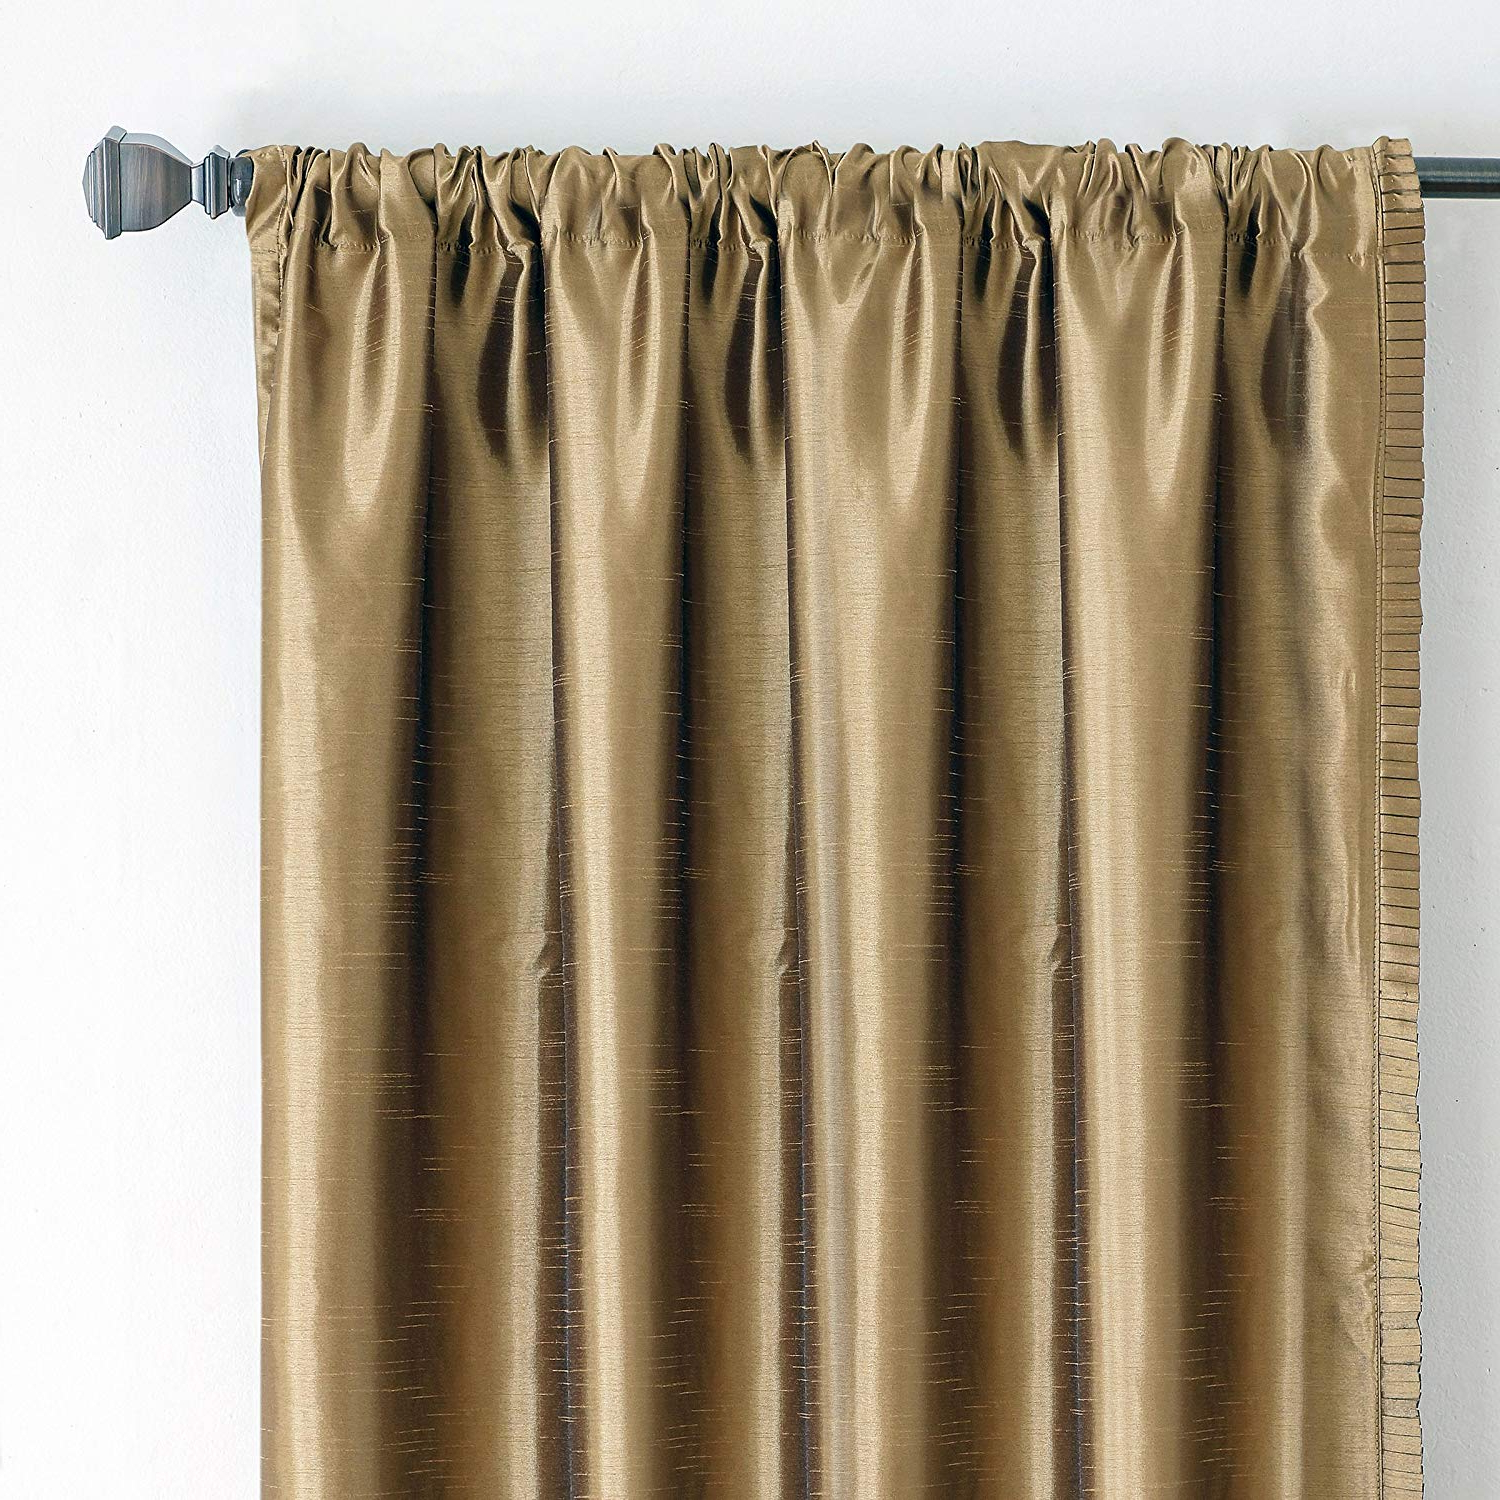 "Current Elrene Versailles Pleated Blackout Curtain Panels In Elrene Home Fashions Versailles Faux Silk Room Darkening & Energy Efficient Lined Rod Pocket Window Curtain Drape Pleated Solid Panel, 52"" X 84"" (1), (View 8 of 20)"